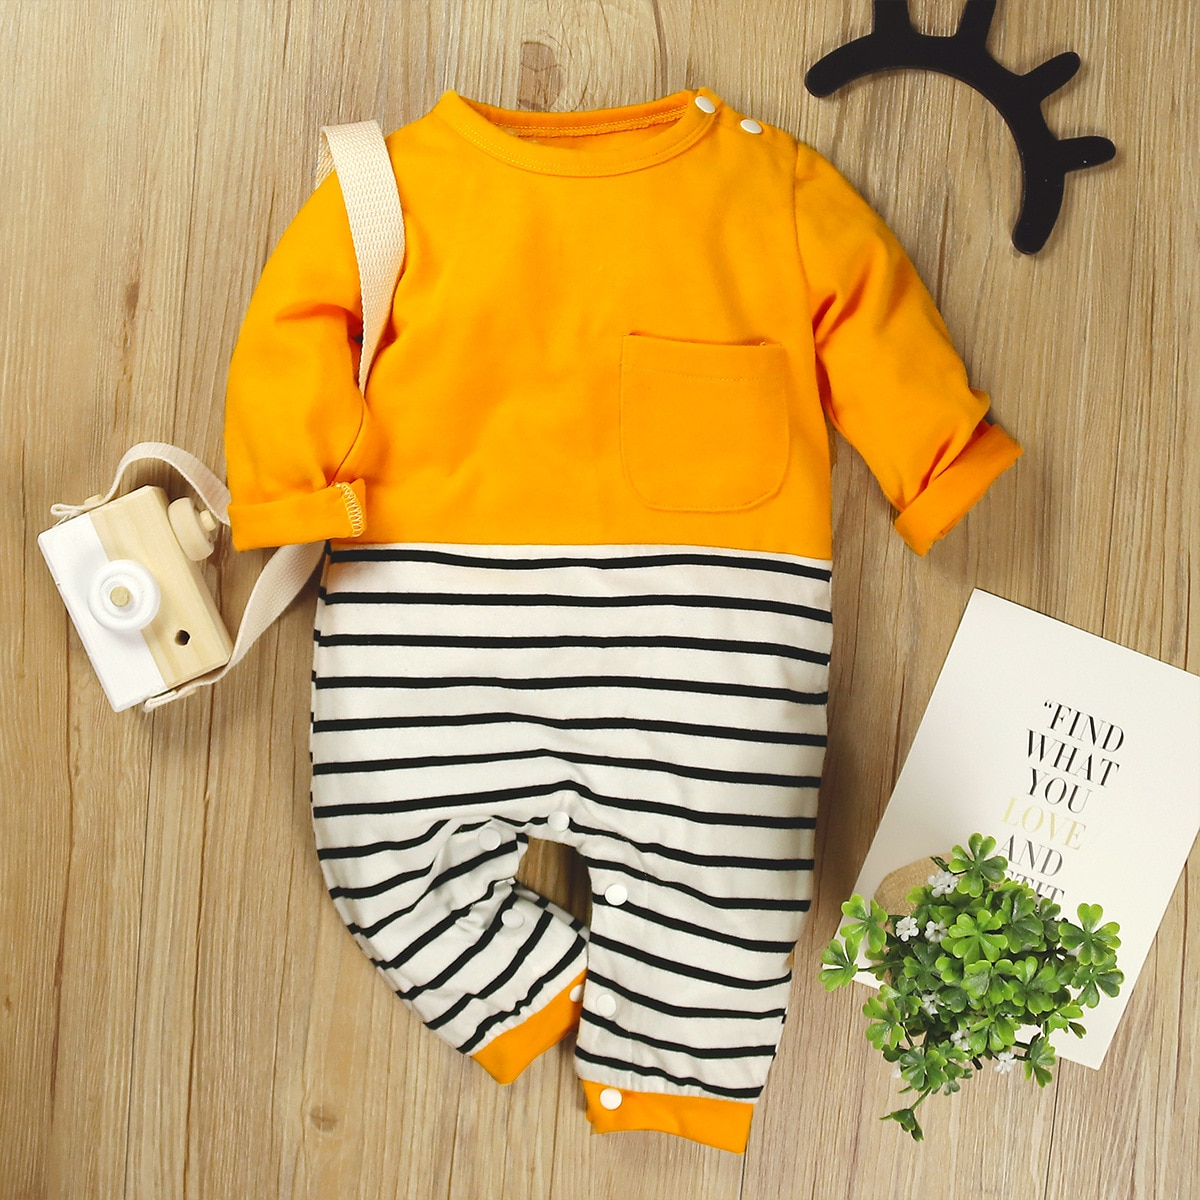 patpat 2020 spring and autumn new baby dinosaur print long sleeves 0 1 years jumpsuit one pieces baby boy clothes New  Baby Long Sleeve Cute Stripes Color Matching Spring & Autumn Clothes One-piece Rompers Baby Boy and Girl Jumpsuit